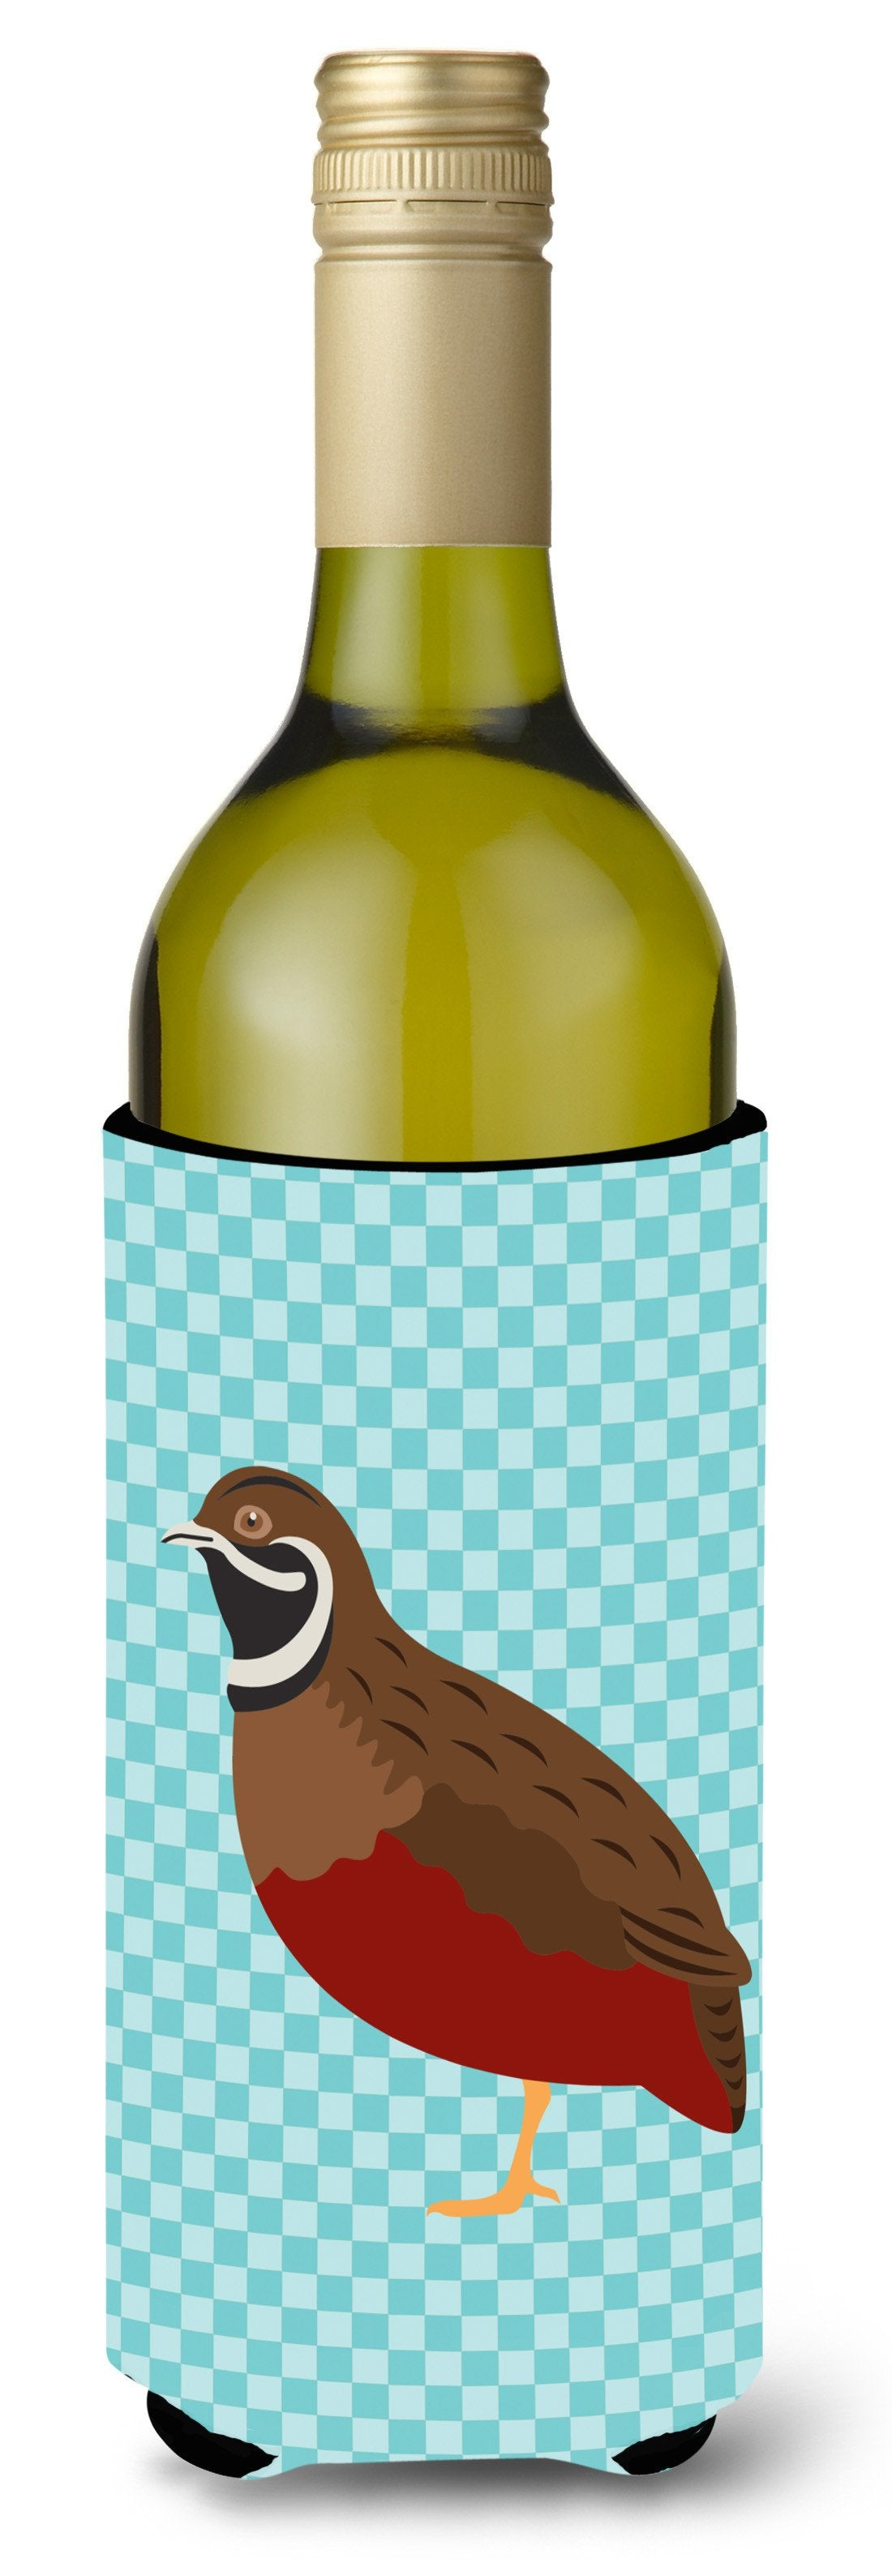 Chinese Painted or King Quail Blue Check Wine Bottle Beverge Insulator Hugger BB8130LITERK by Caroline's Treasures